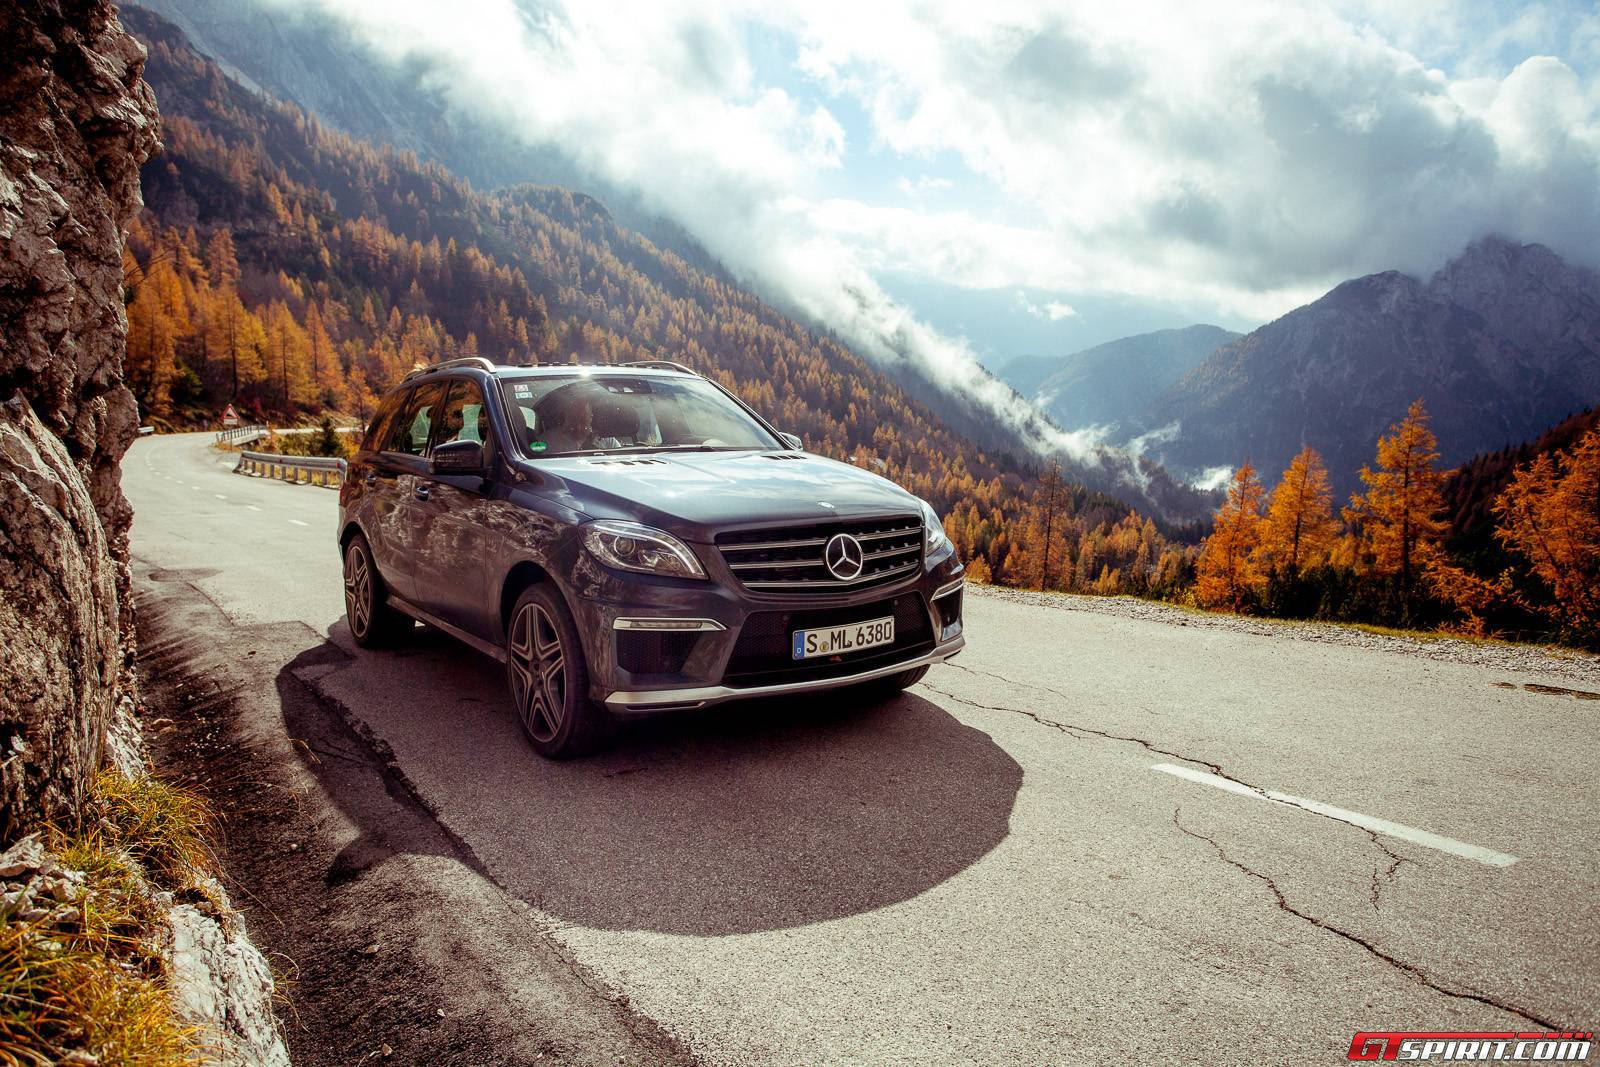 A Road Trip to Slovenia With a Mercedes-Benz ML63 AMG